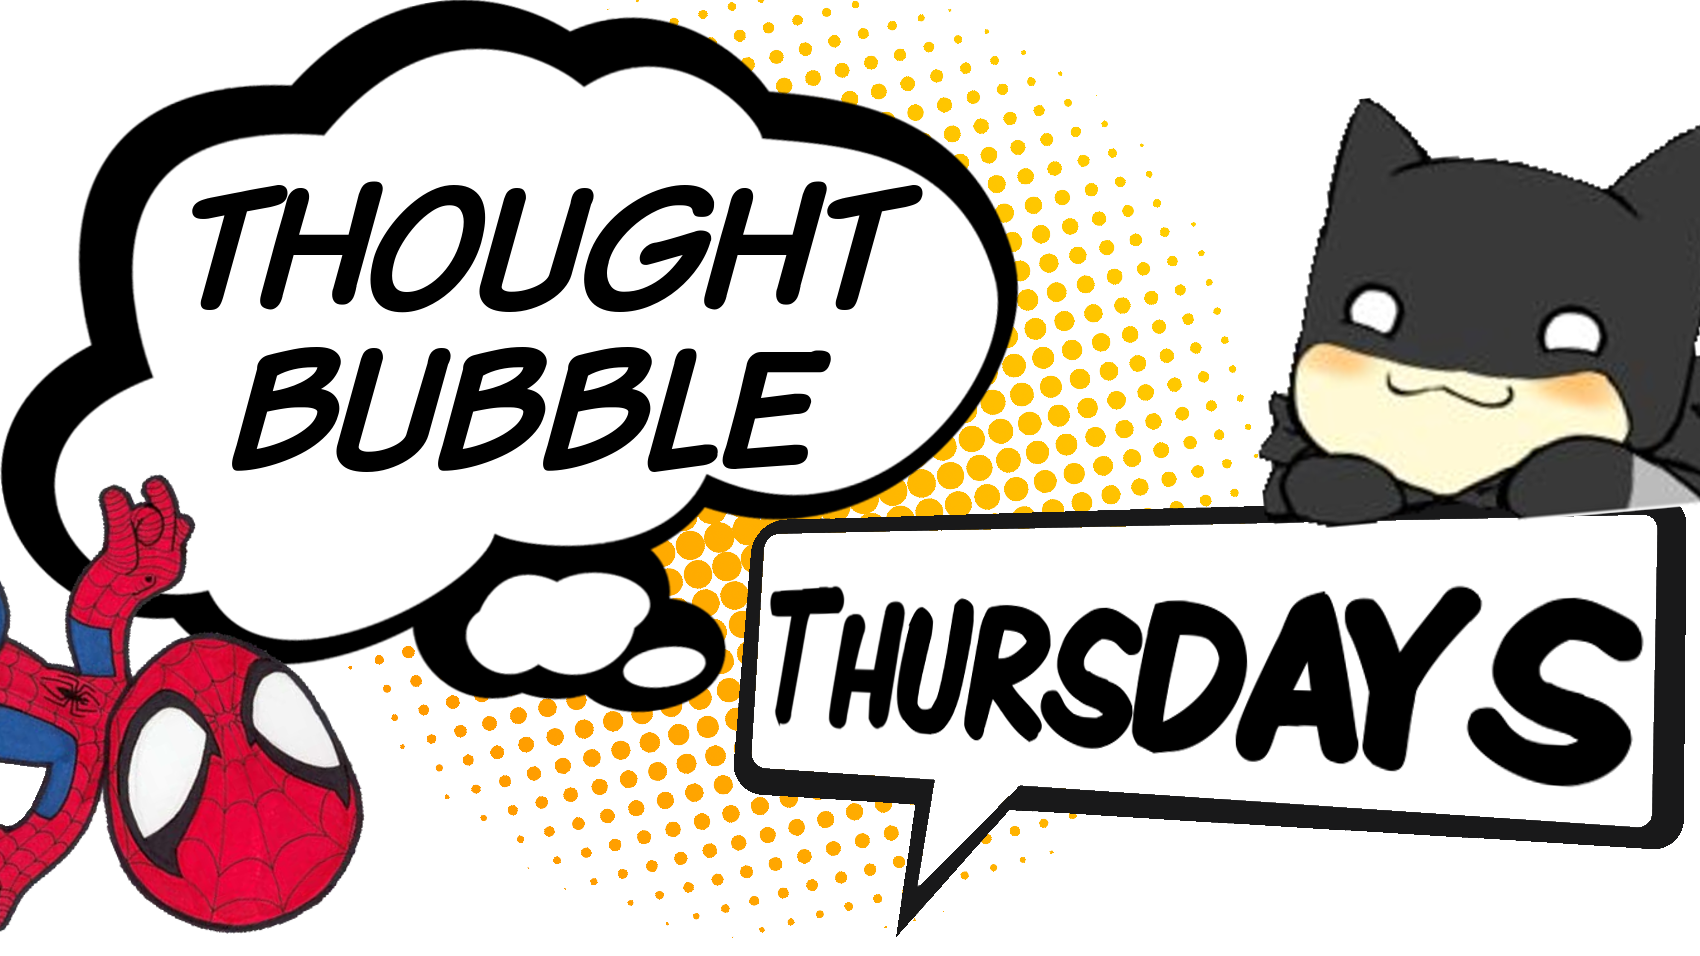 Thought Bubble Thursdays #1 - Assembling the League — Steemit picture library stock